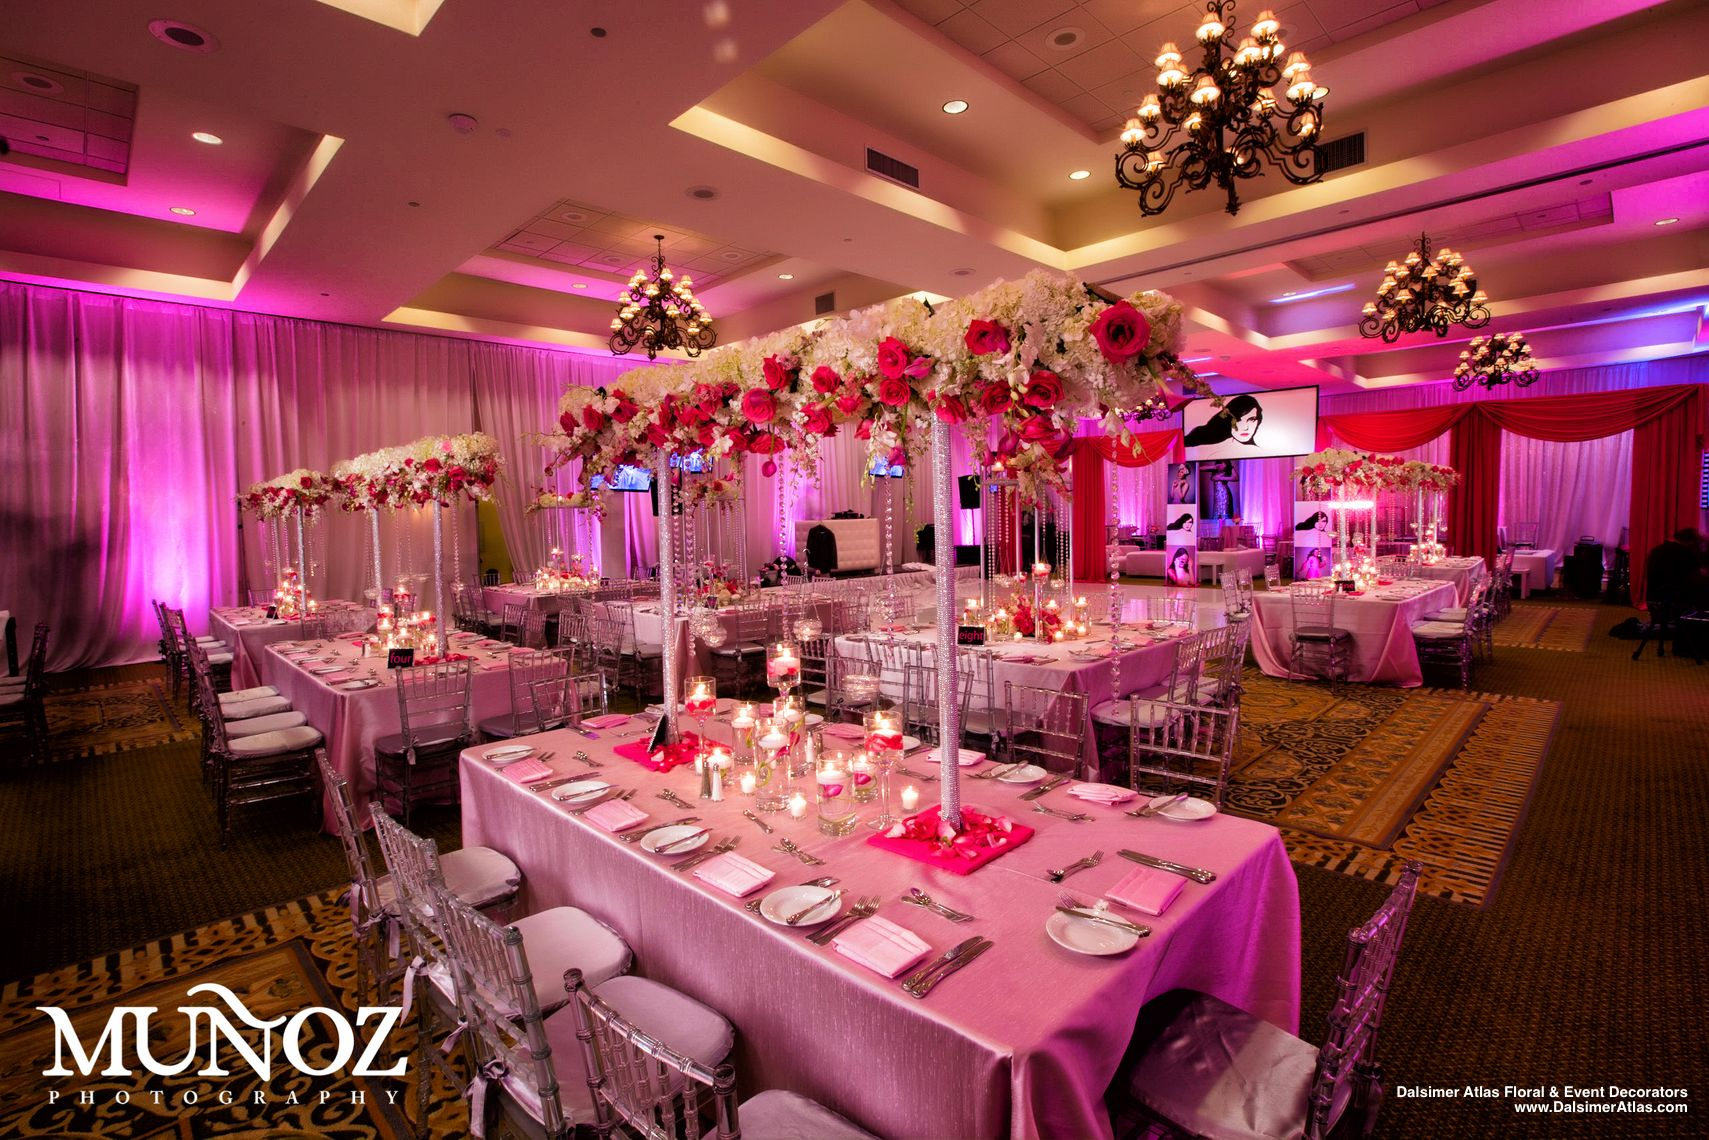 banquet planners decor party decorations reception concert decorators wedding gallery companies event rentals hall florists